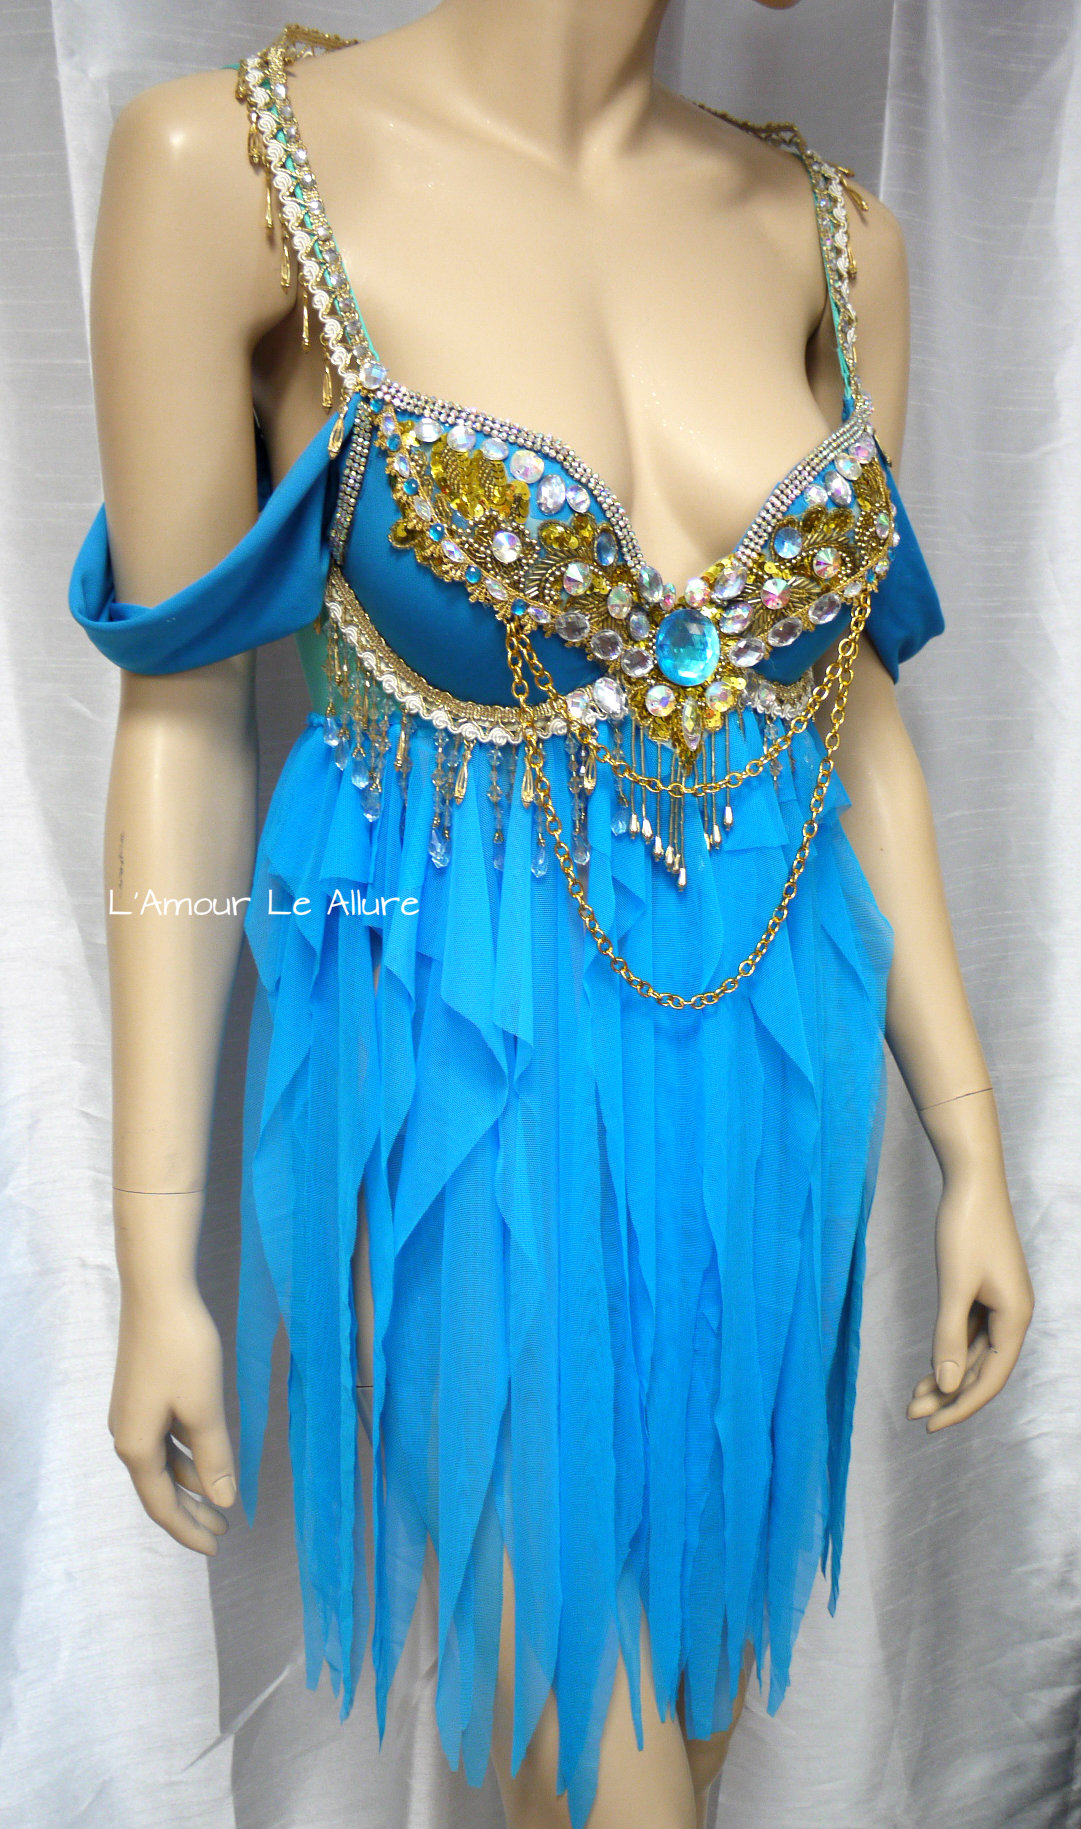 Princess Jasmine Babydoll Dress Cosplay Dance Costume Rave Bra Rave Wear Halloween Burlesque Show Girl ... & Princess Jasmine Babydoll Dress Cosplay Dance Costume Rave Bra Rave ...